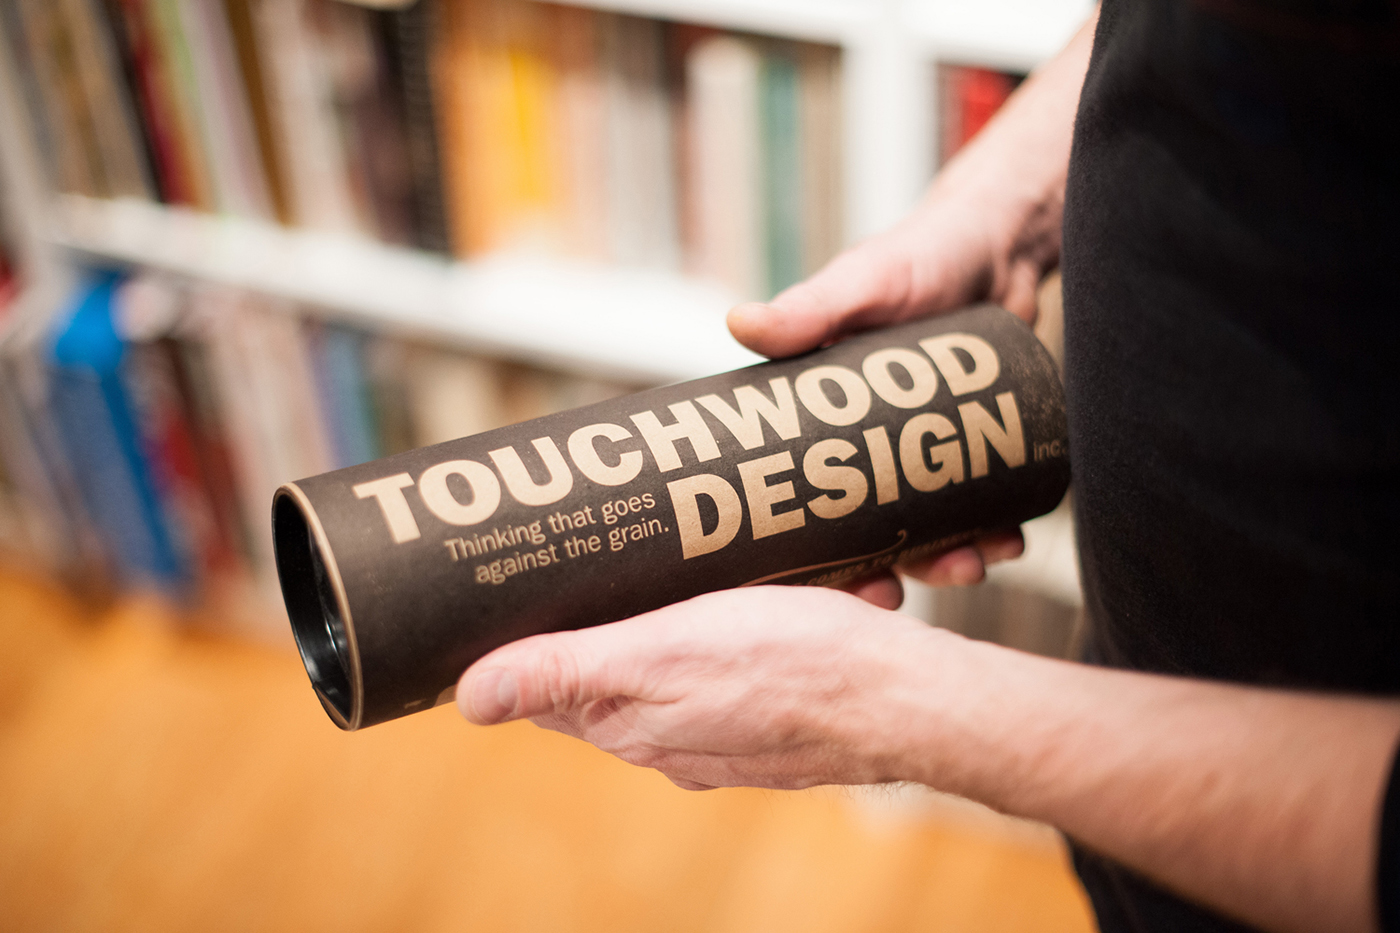 Touchwood Design Candle packaging paper tube. Thinking that goes against the grain.